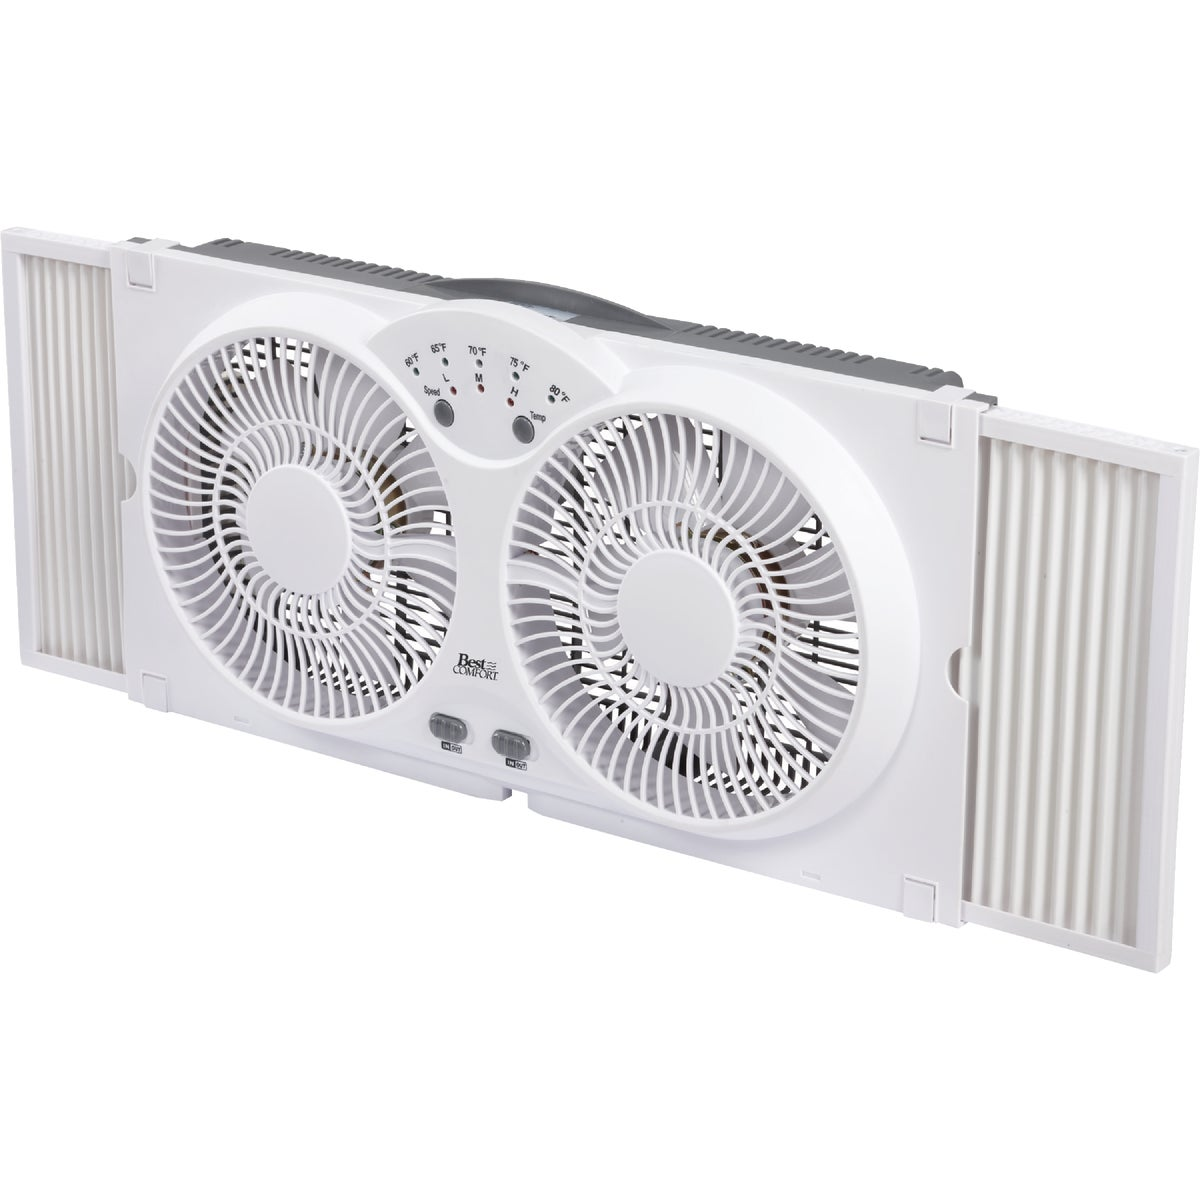 "9"" TWIN WINDOW FAN - FW23-8HS by Do it Best"